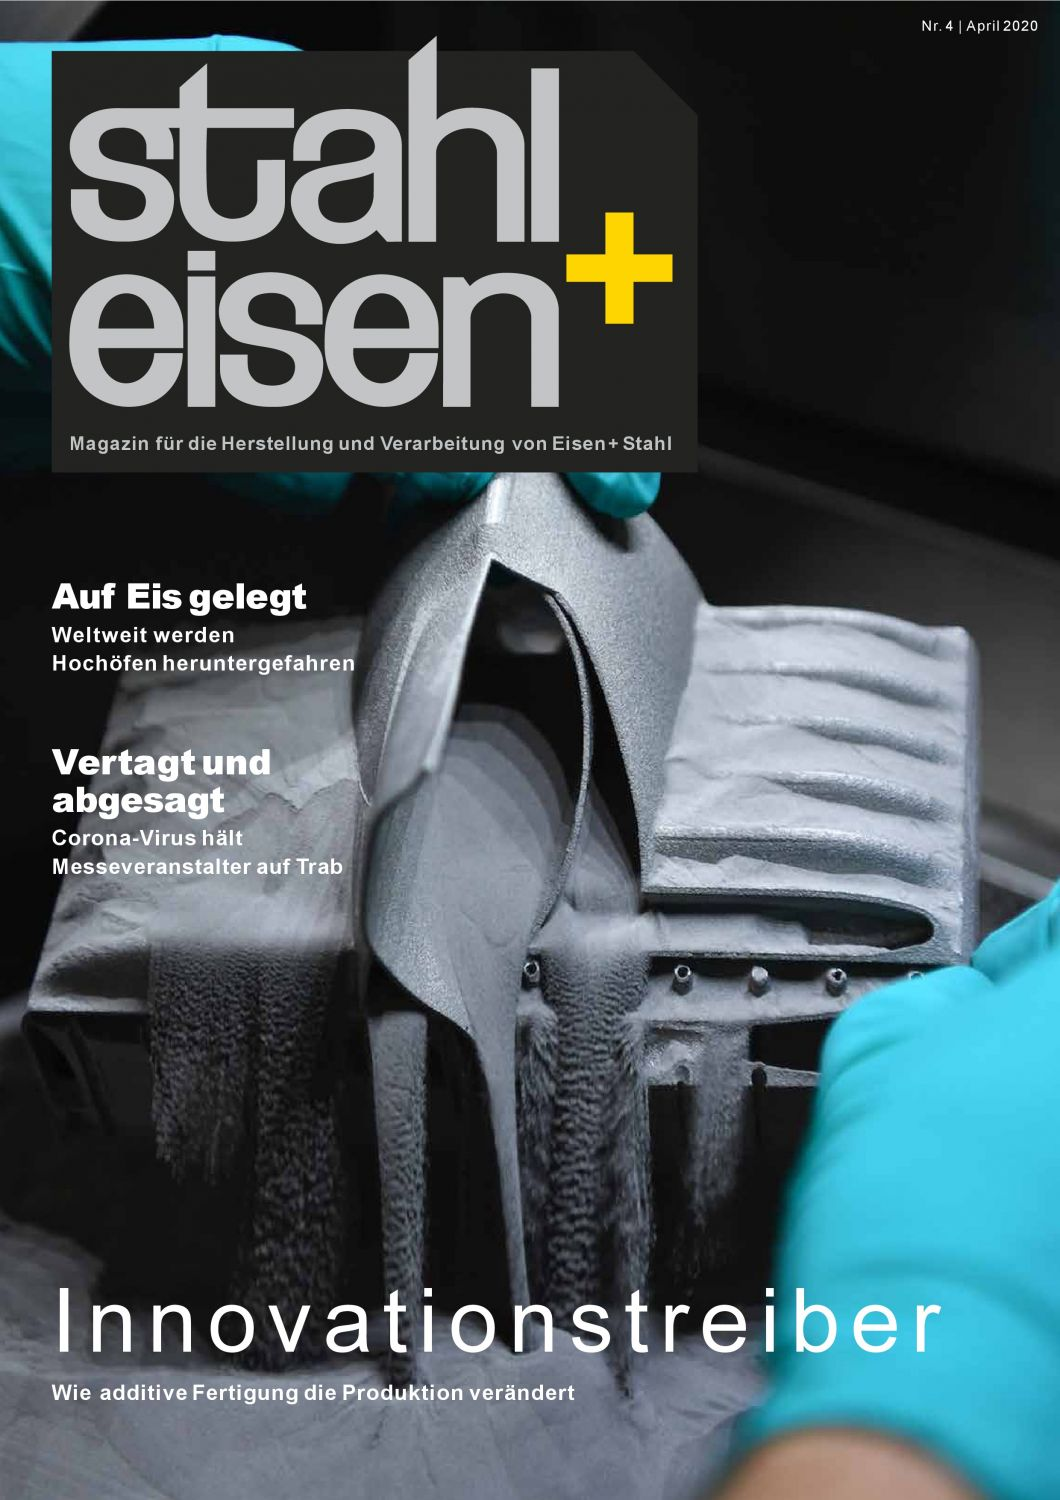 Lithography-based Metal Manufacturing is featured in April issue of